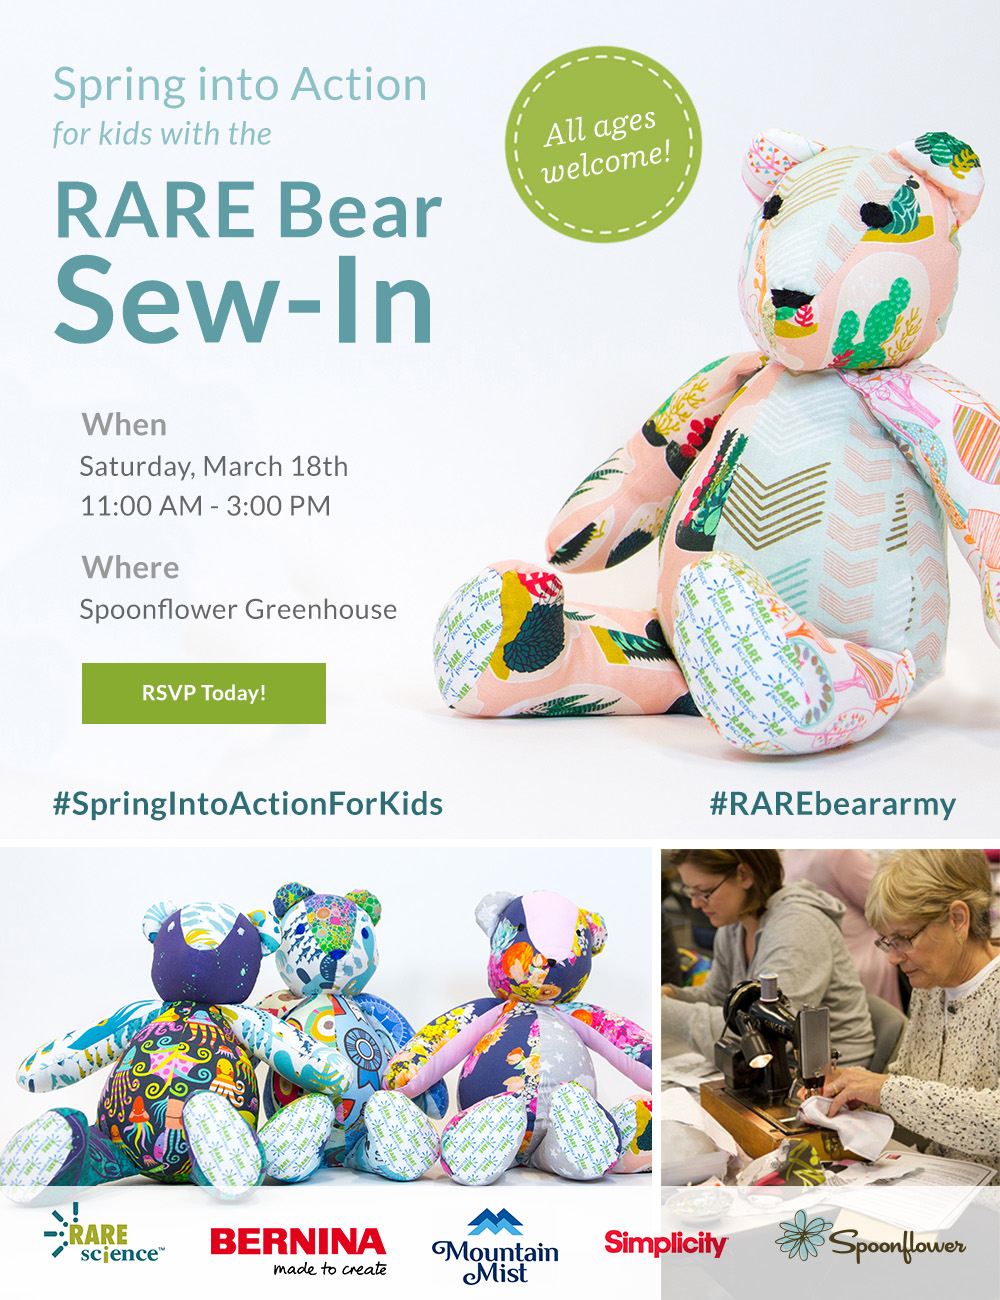 RARE Bear sew-in on March 18